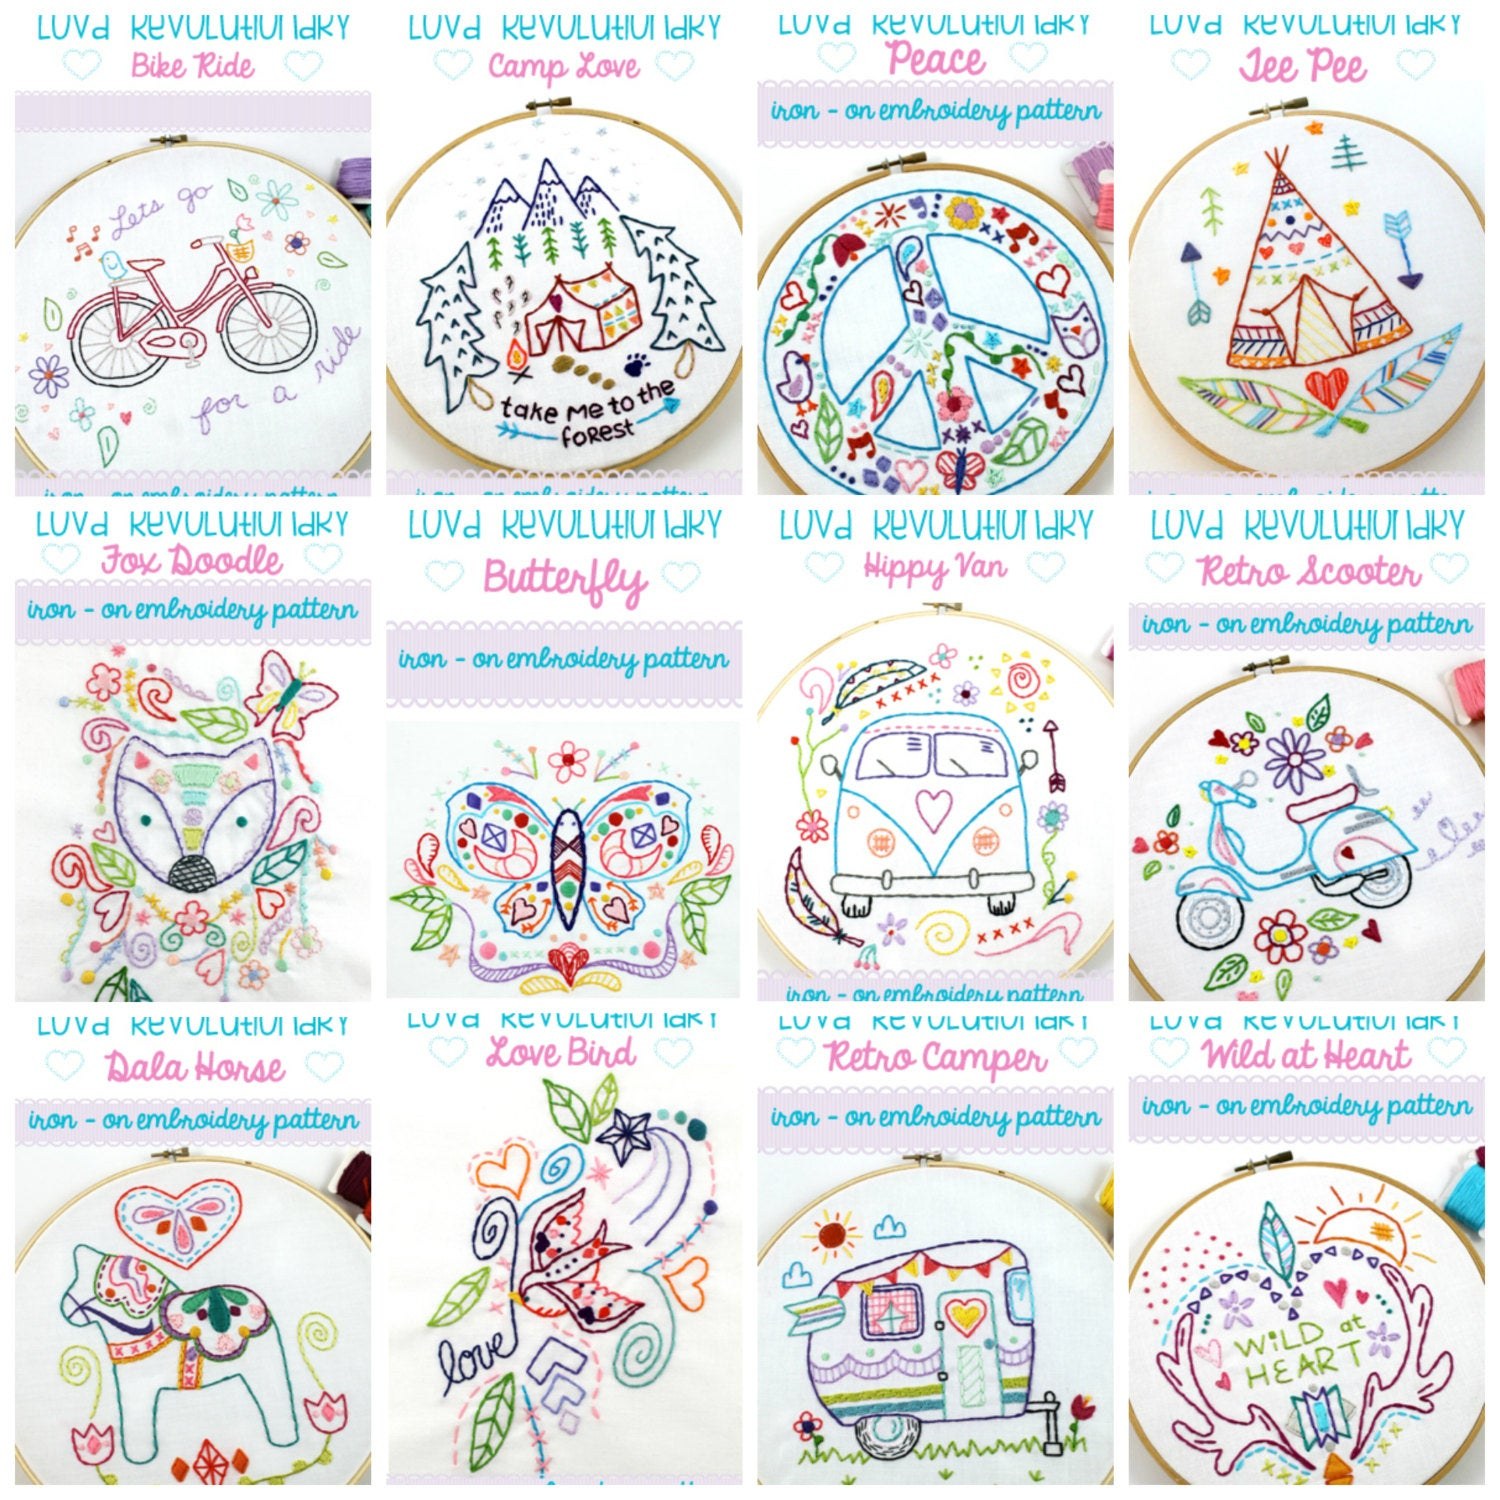 Embroidery Designs Patterns Iron On Hand Embroidery Patterns Hand Sewing Iron On Transfer Embroidery Designs Embroidery Gift Craft Kit Craft Gifts Hand Stitched